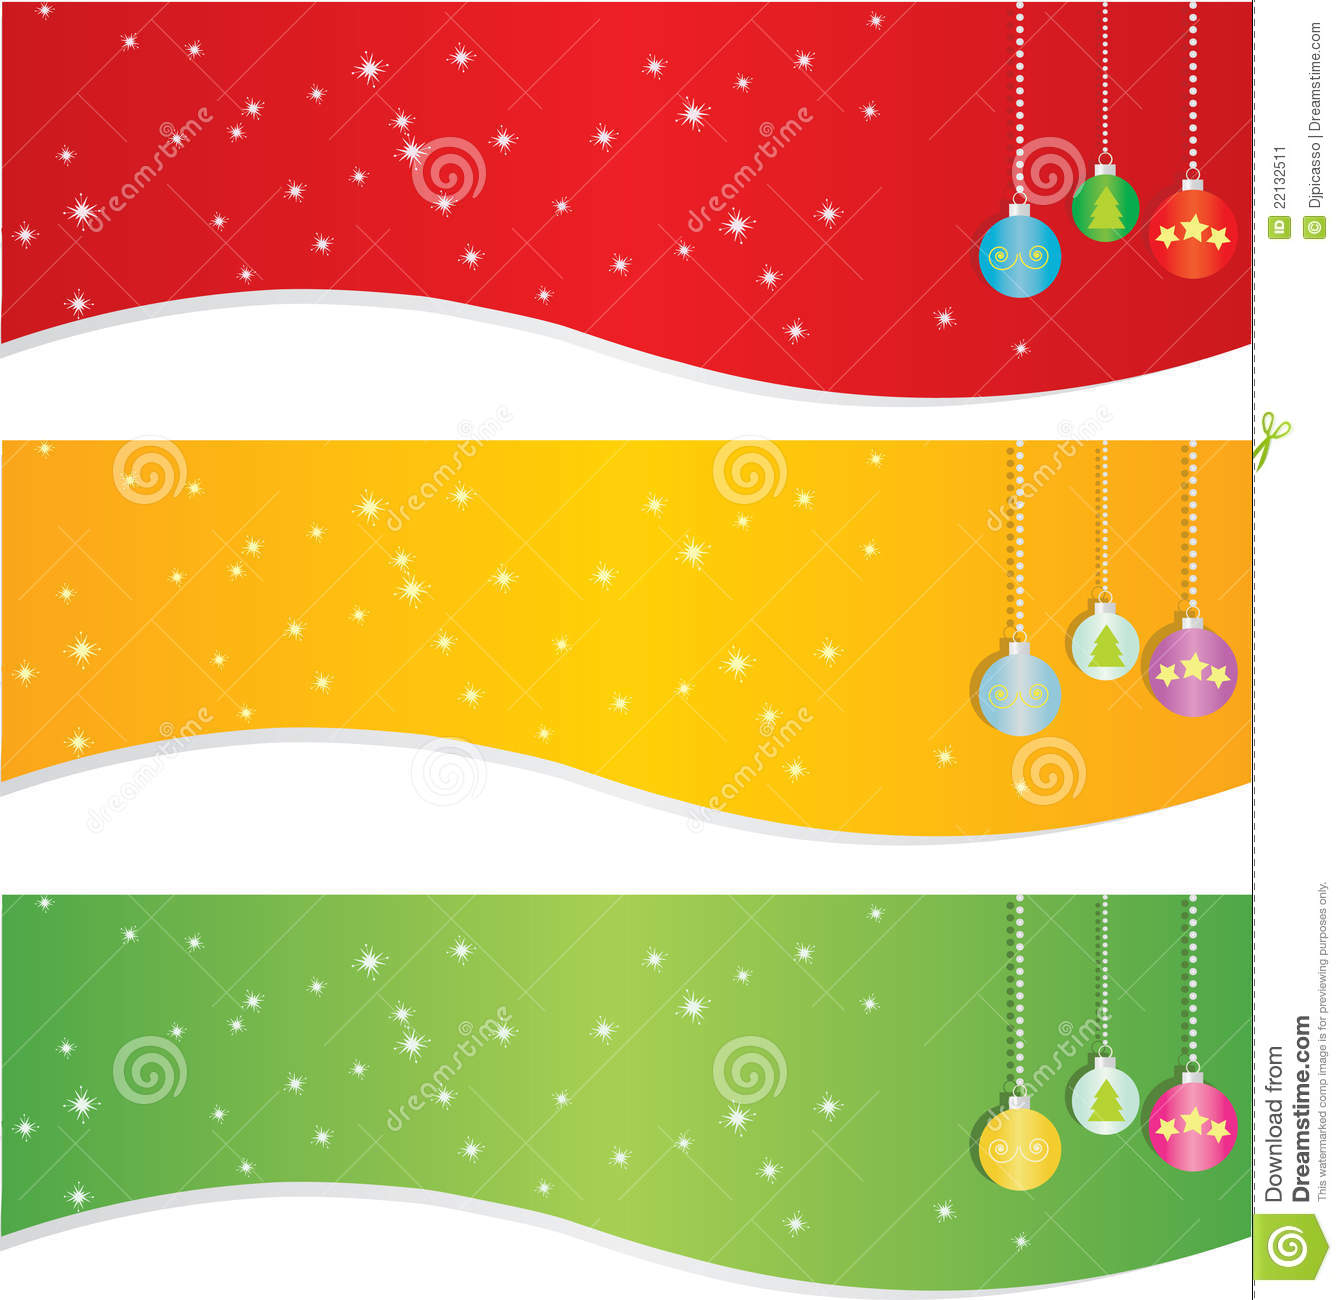 Christmas Banner Set Stock Image - Image: 22132511